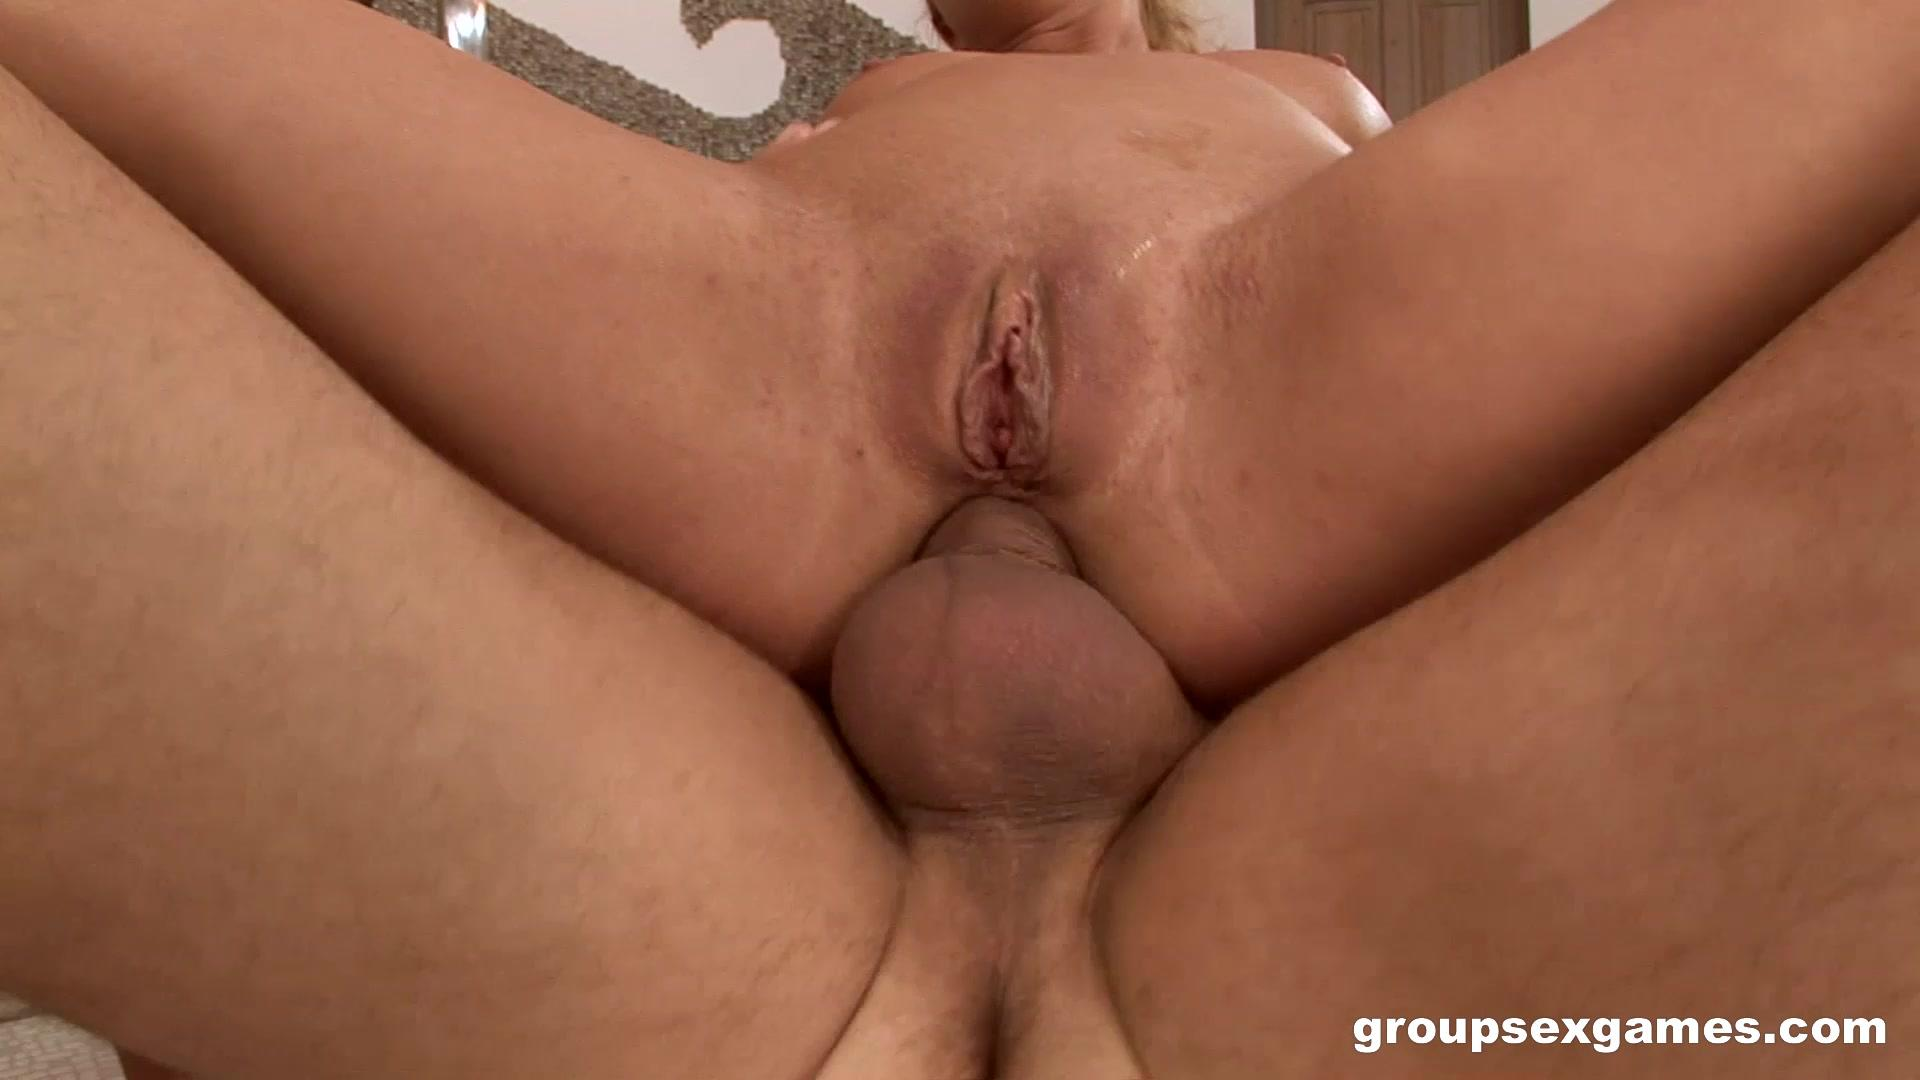 Group Sex Games – Nikita Blue And Kyara Getting Double Penetrated